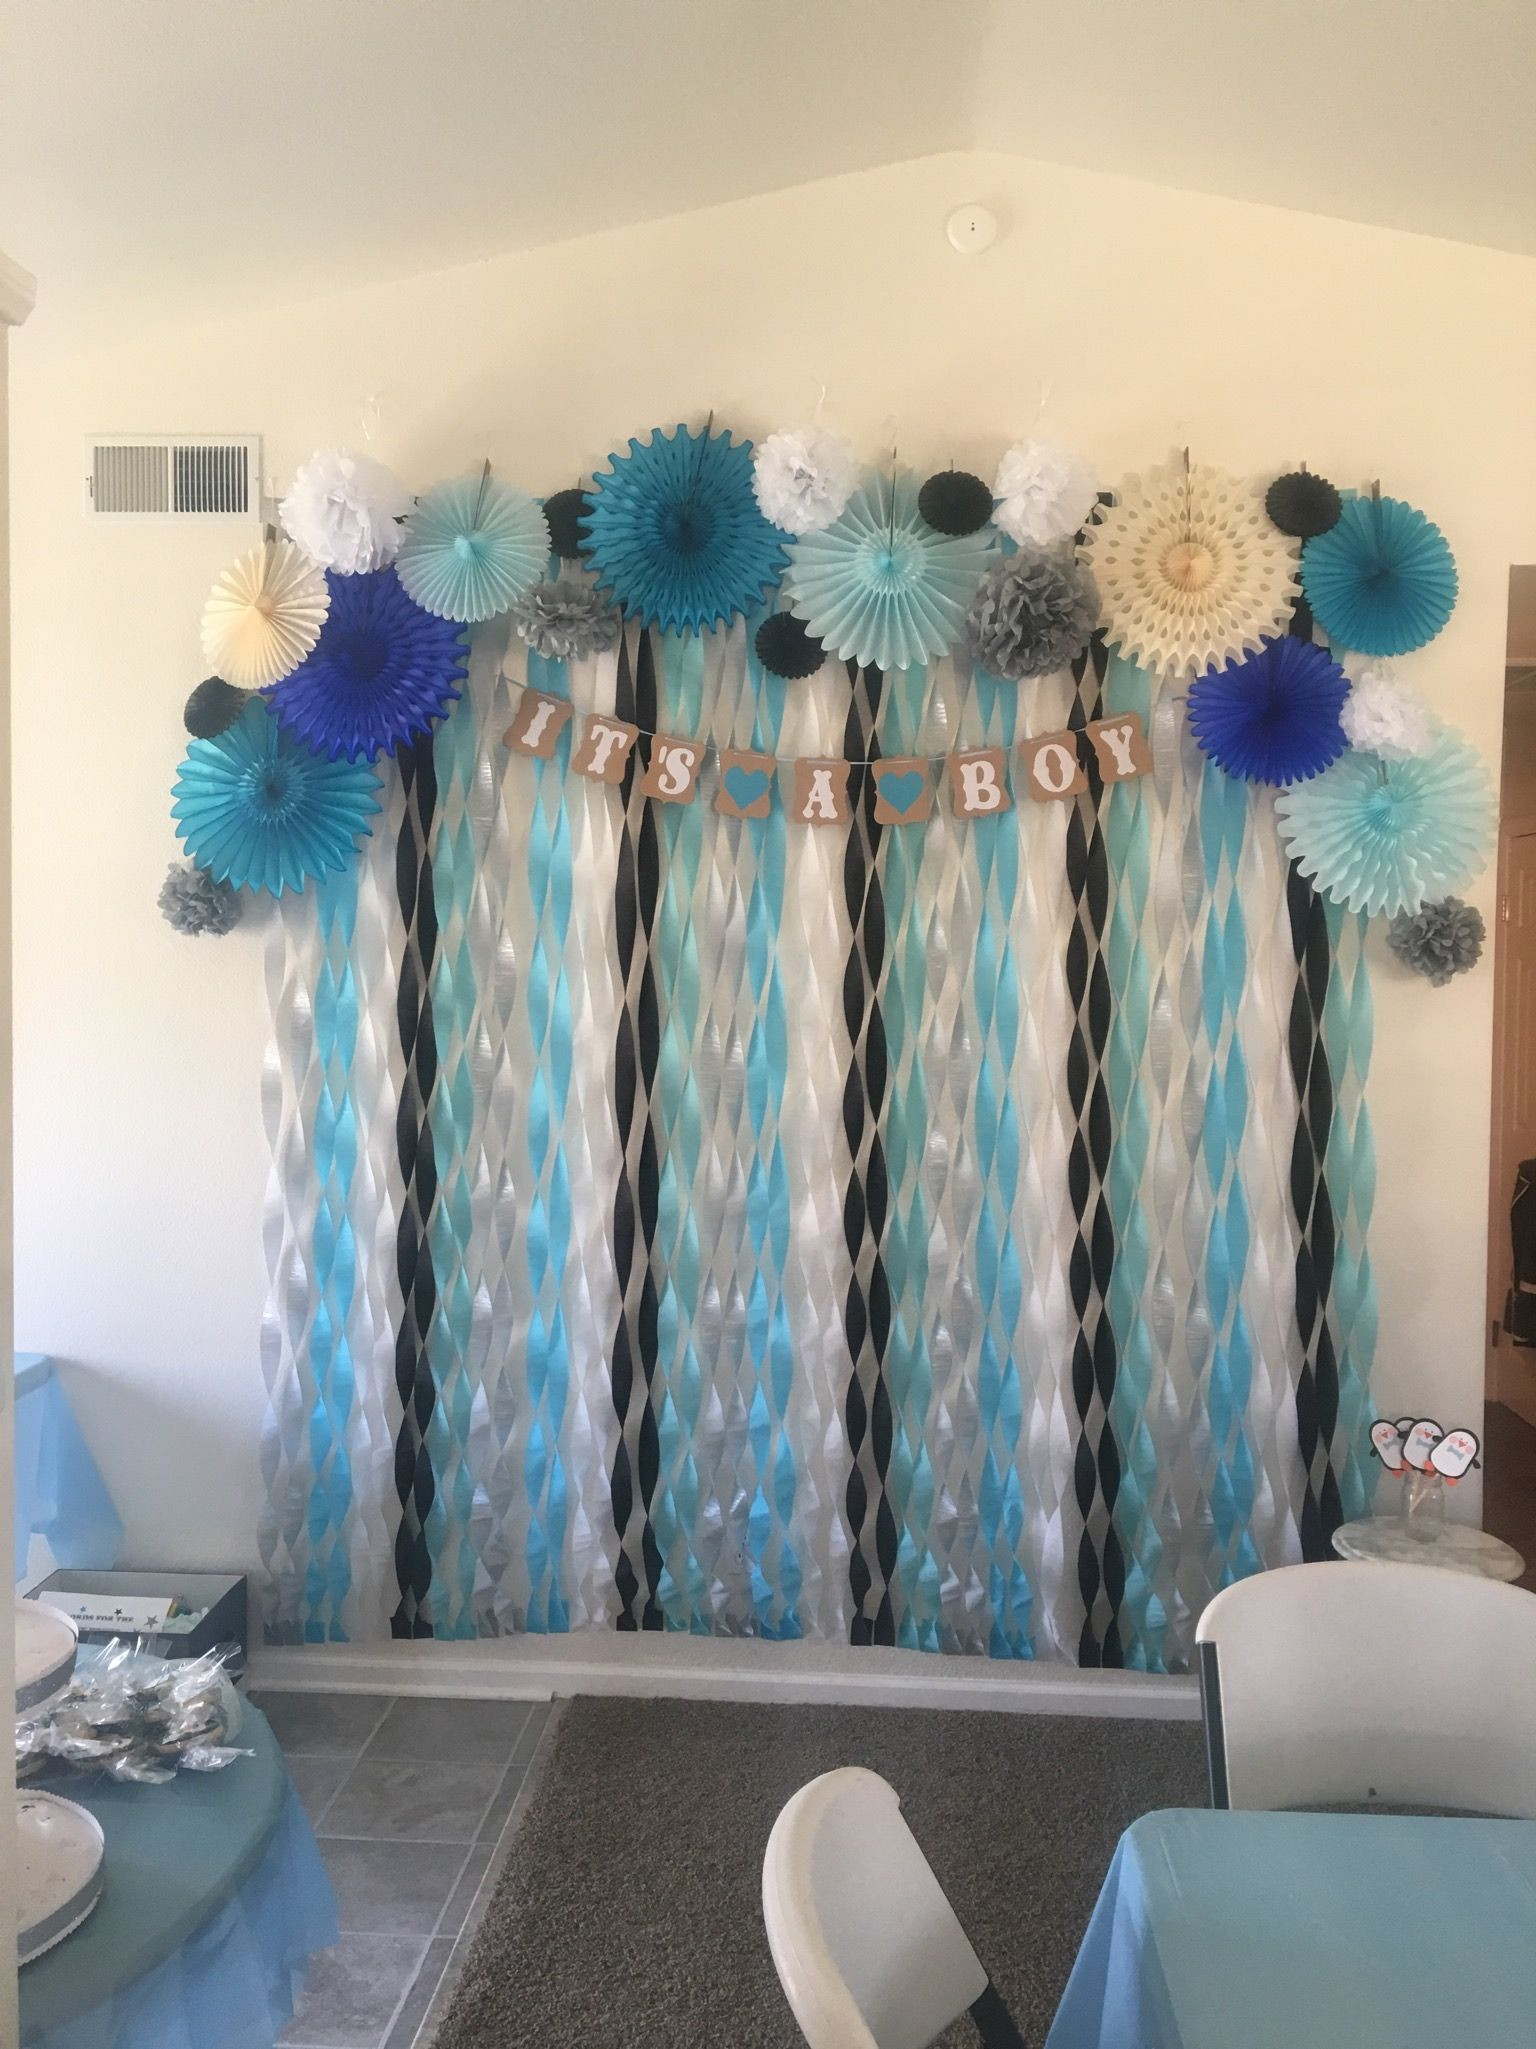 Best ideas about DIY Baby Shower Backdrop . Save or Pin Penguin Themed Baby Shower backdrop Now.